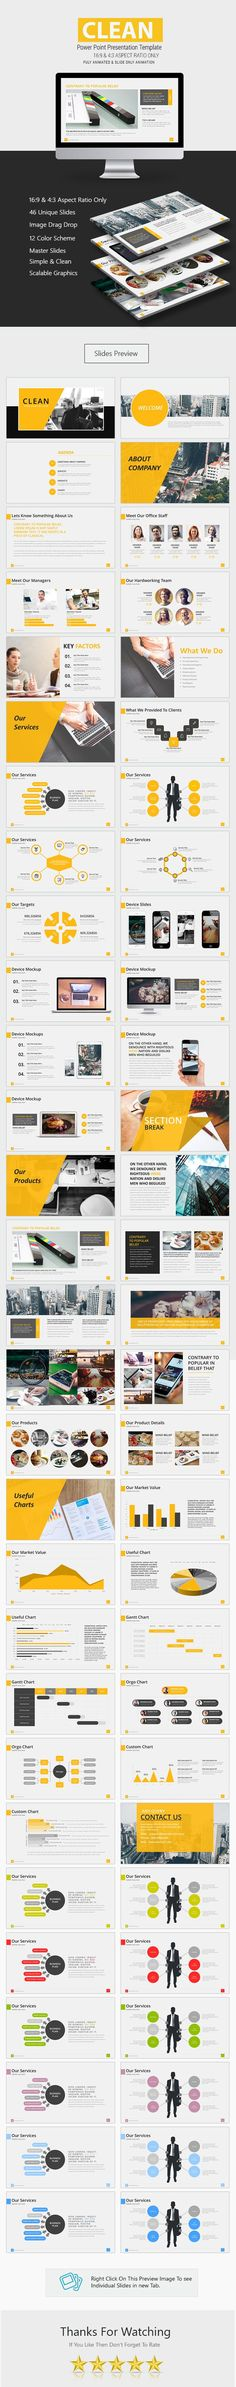 8 Great Powerpoint tools images | Page layout, Presentation